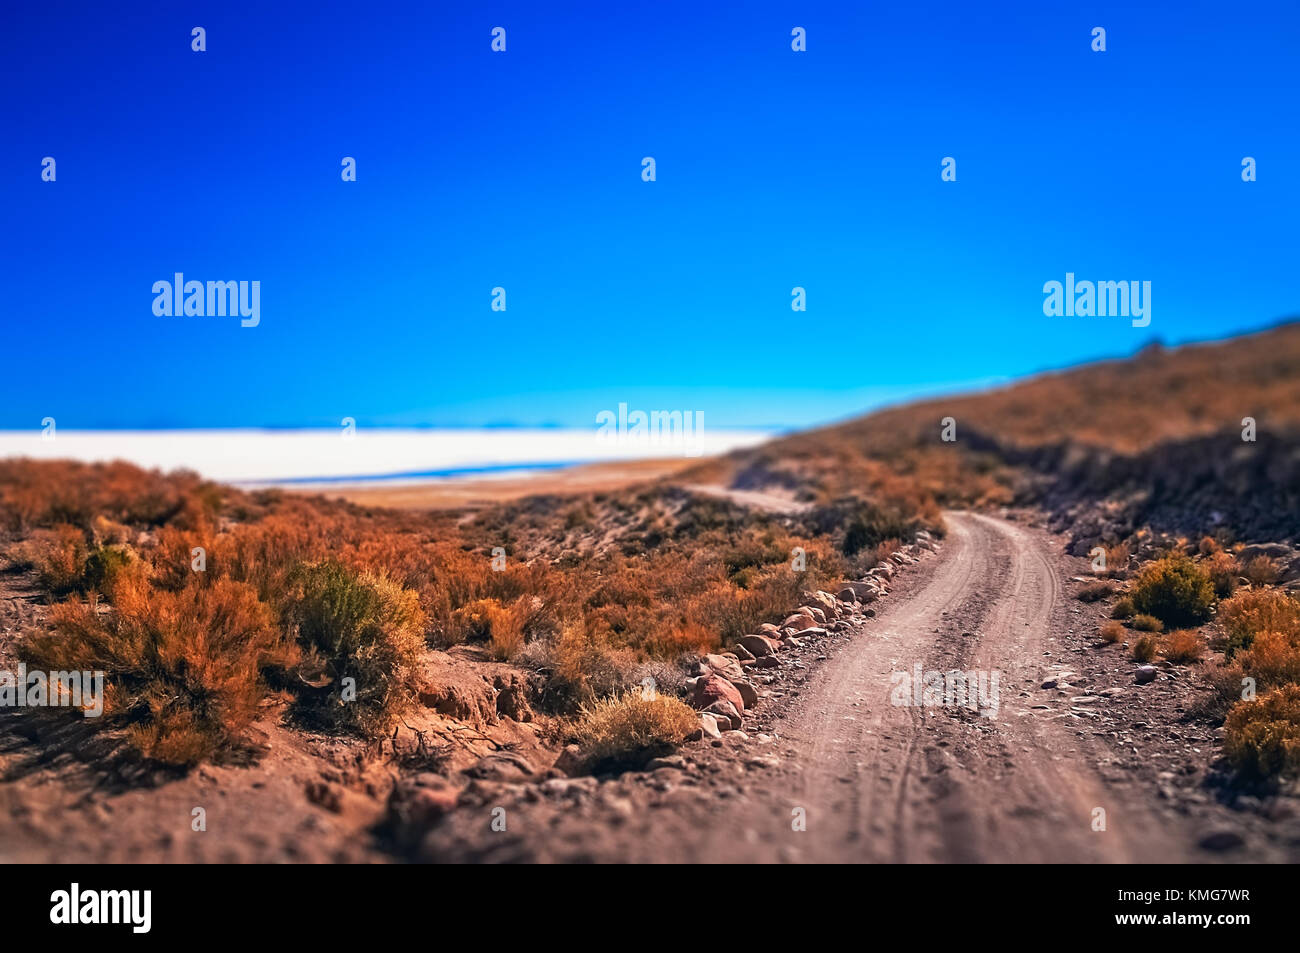 Remote road leading to the biggest of salt lakes, Salar de Uyuni in Bolivia - Stock Image